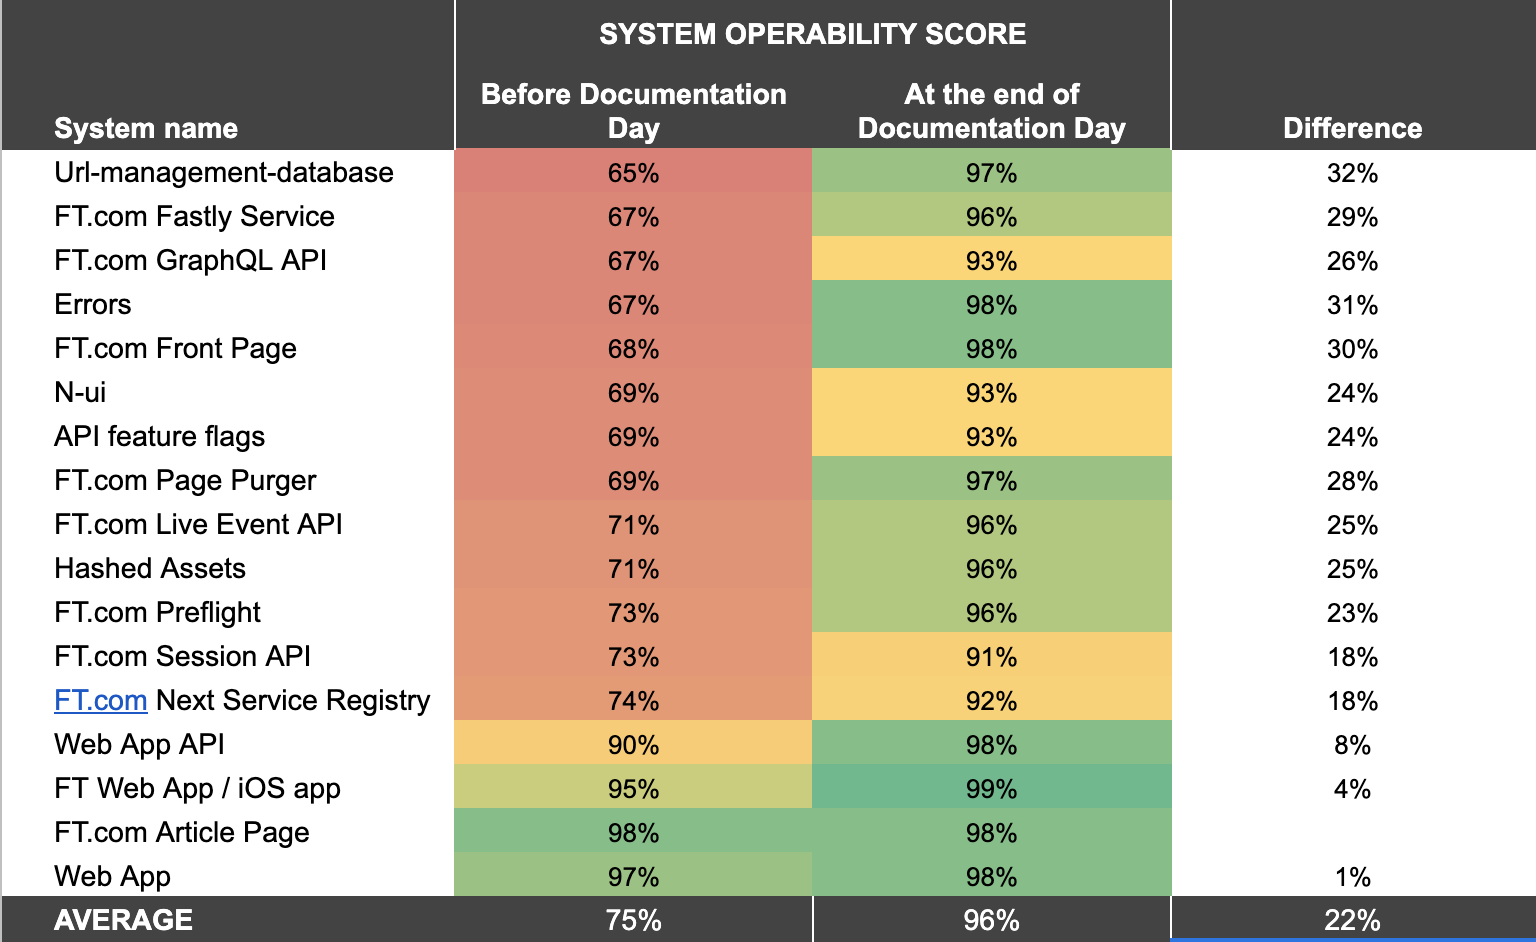 SOS scores for runbooks we worked on before and after Documentation Day